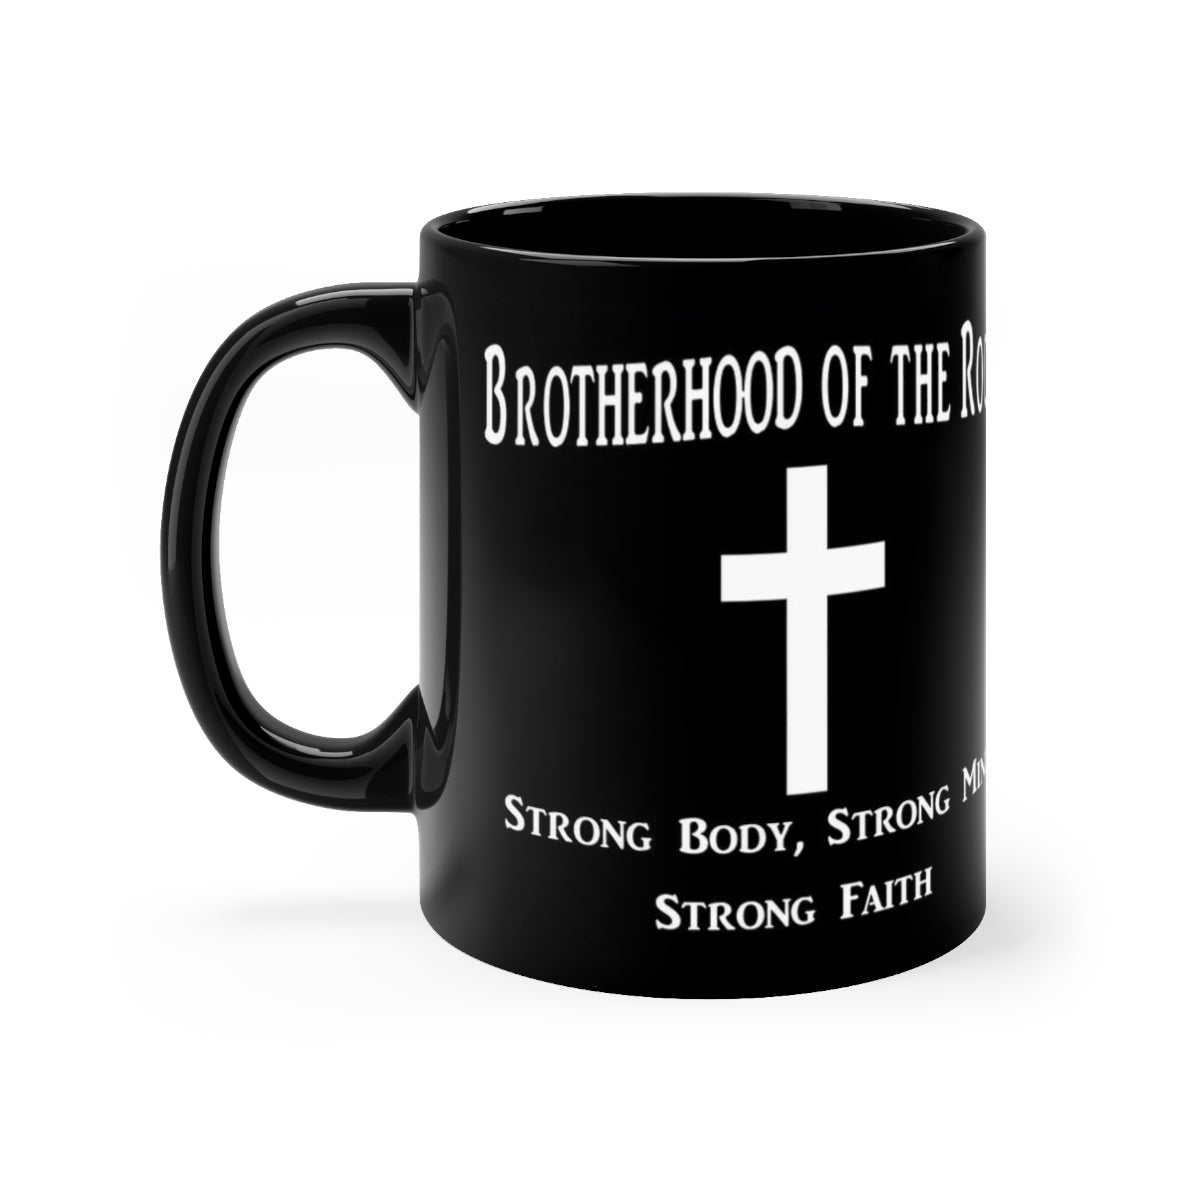 Brotherhood of the Rock Black mug 11oz